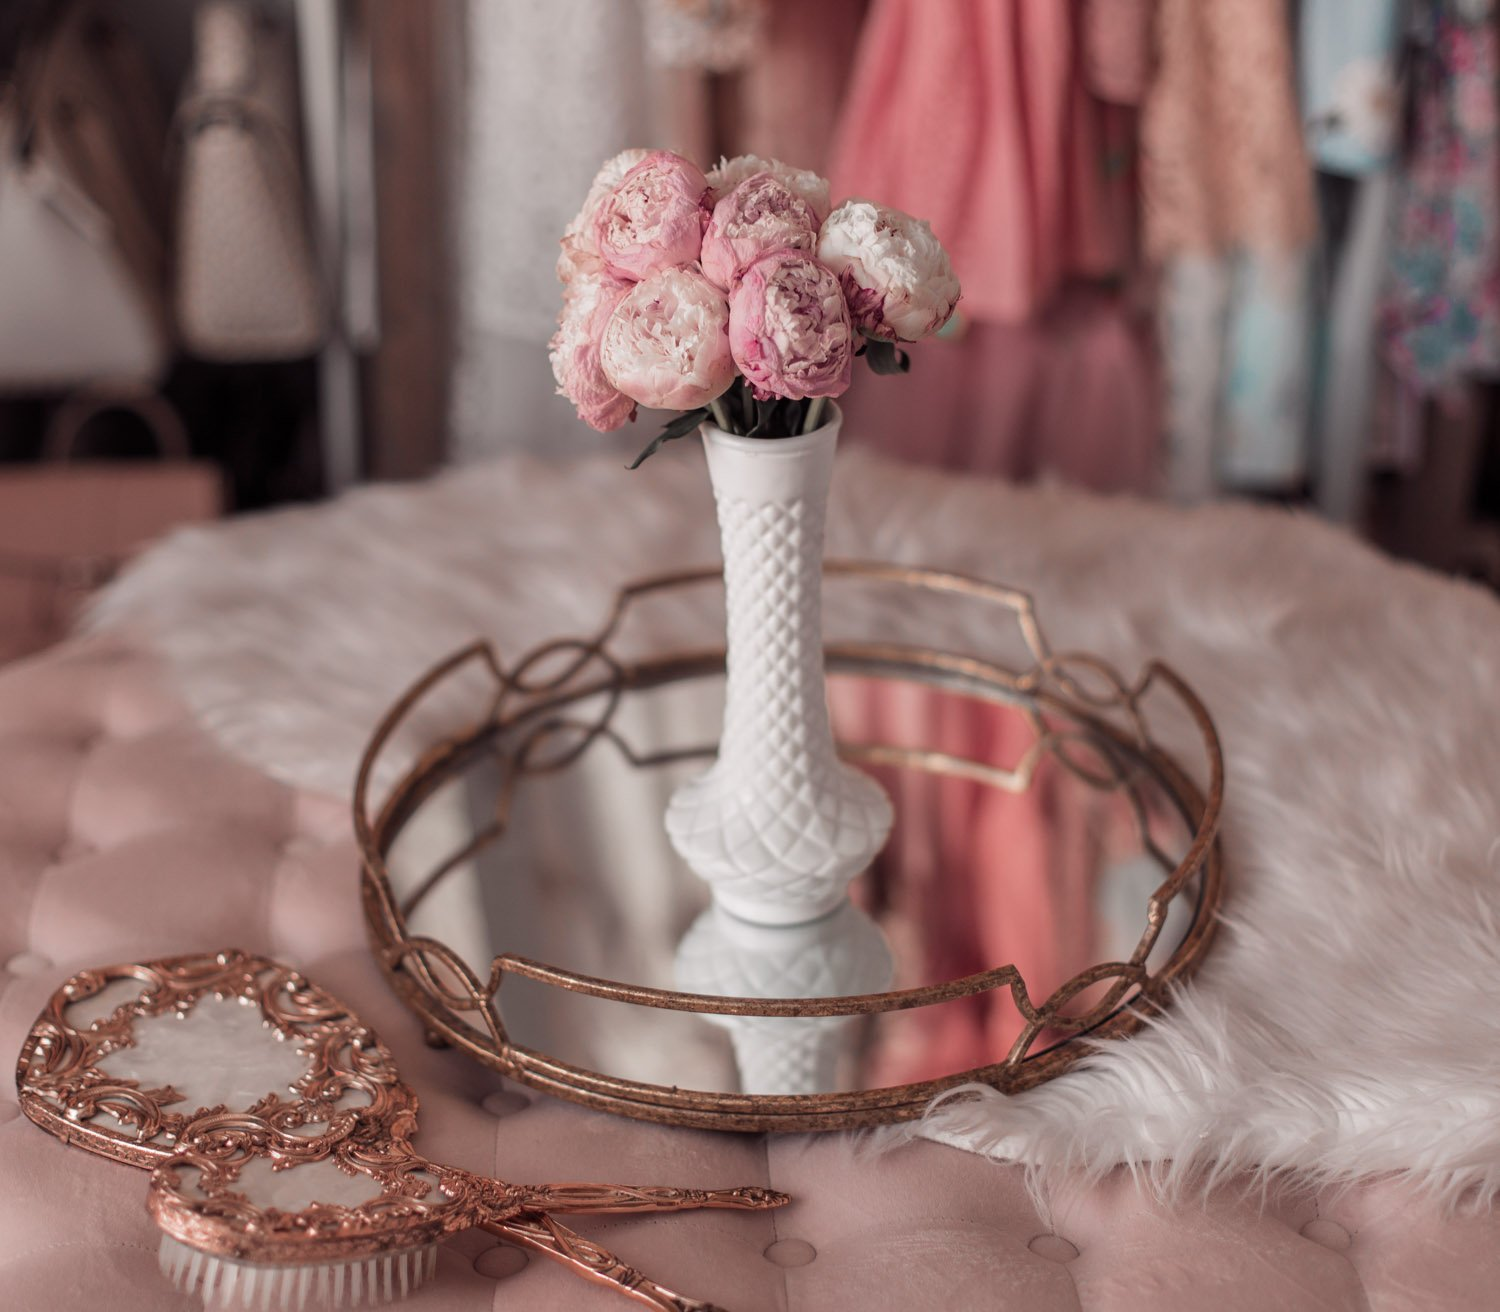 Feminine fashion blogger Elizabeth Hugen of Lizzie in Lace shares the Best Mother's Day gift ideas in her Mother's Day gift guide including these Urban stems pink peonies